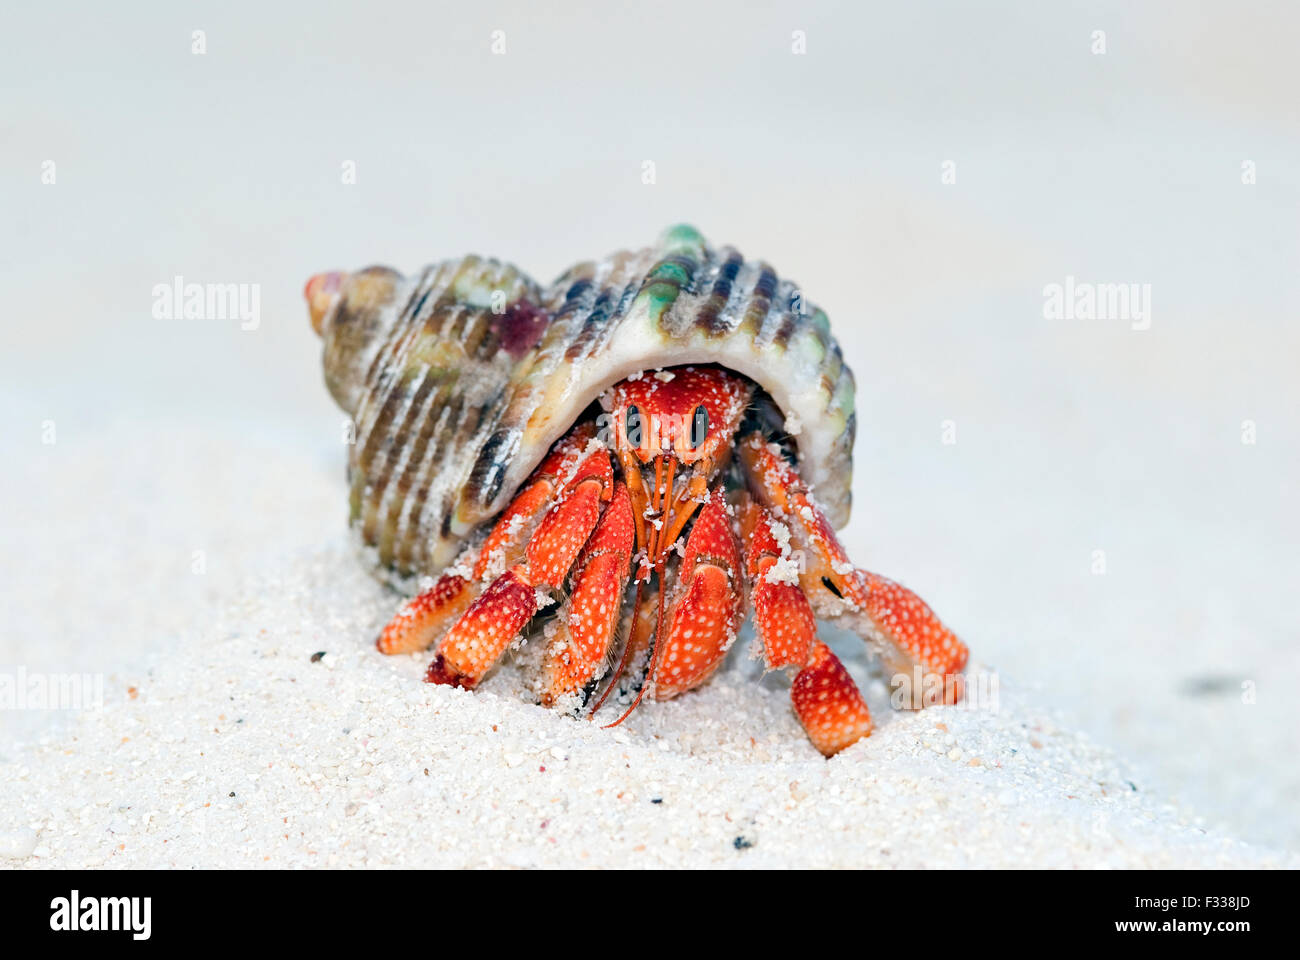 The image of Land hermit crab (Coenobita perlatus) in Karavatti island, Lakshadweep, India - Stock Image